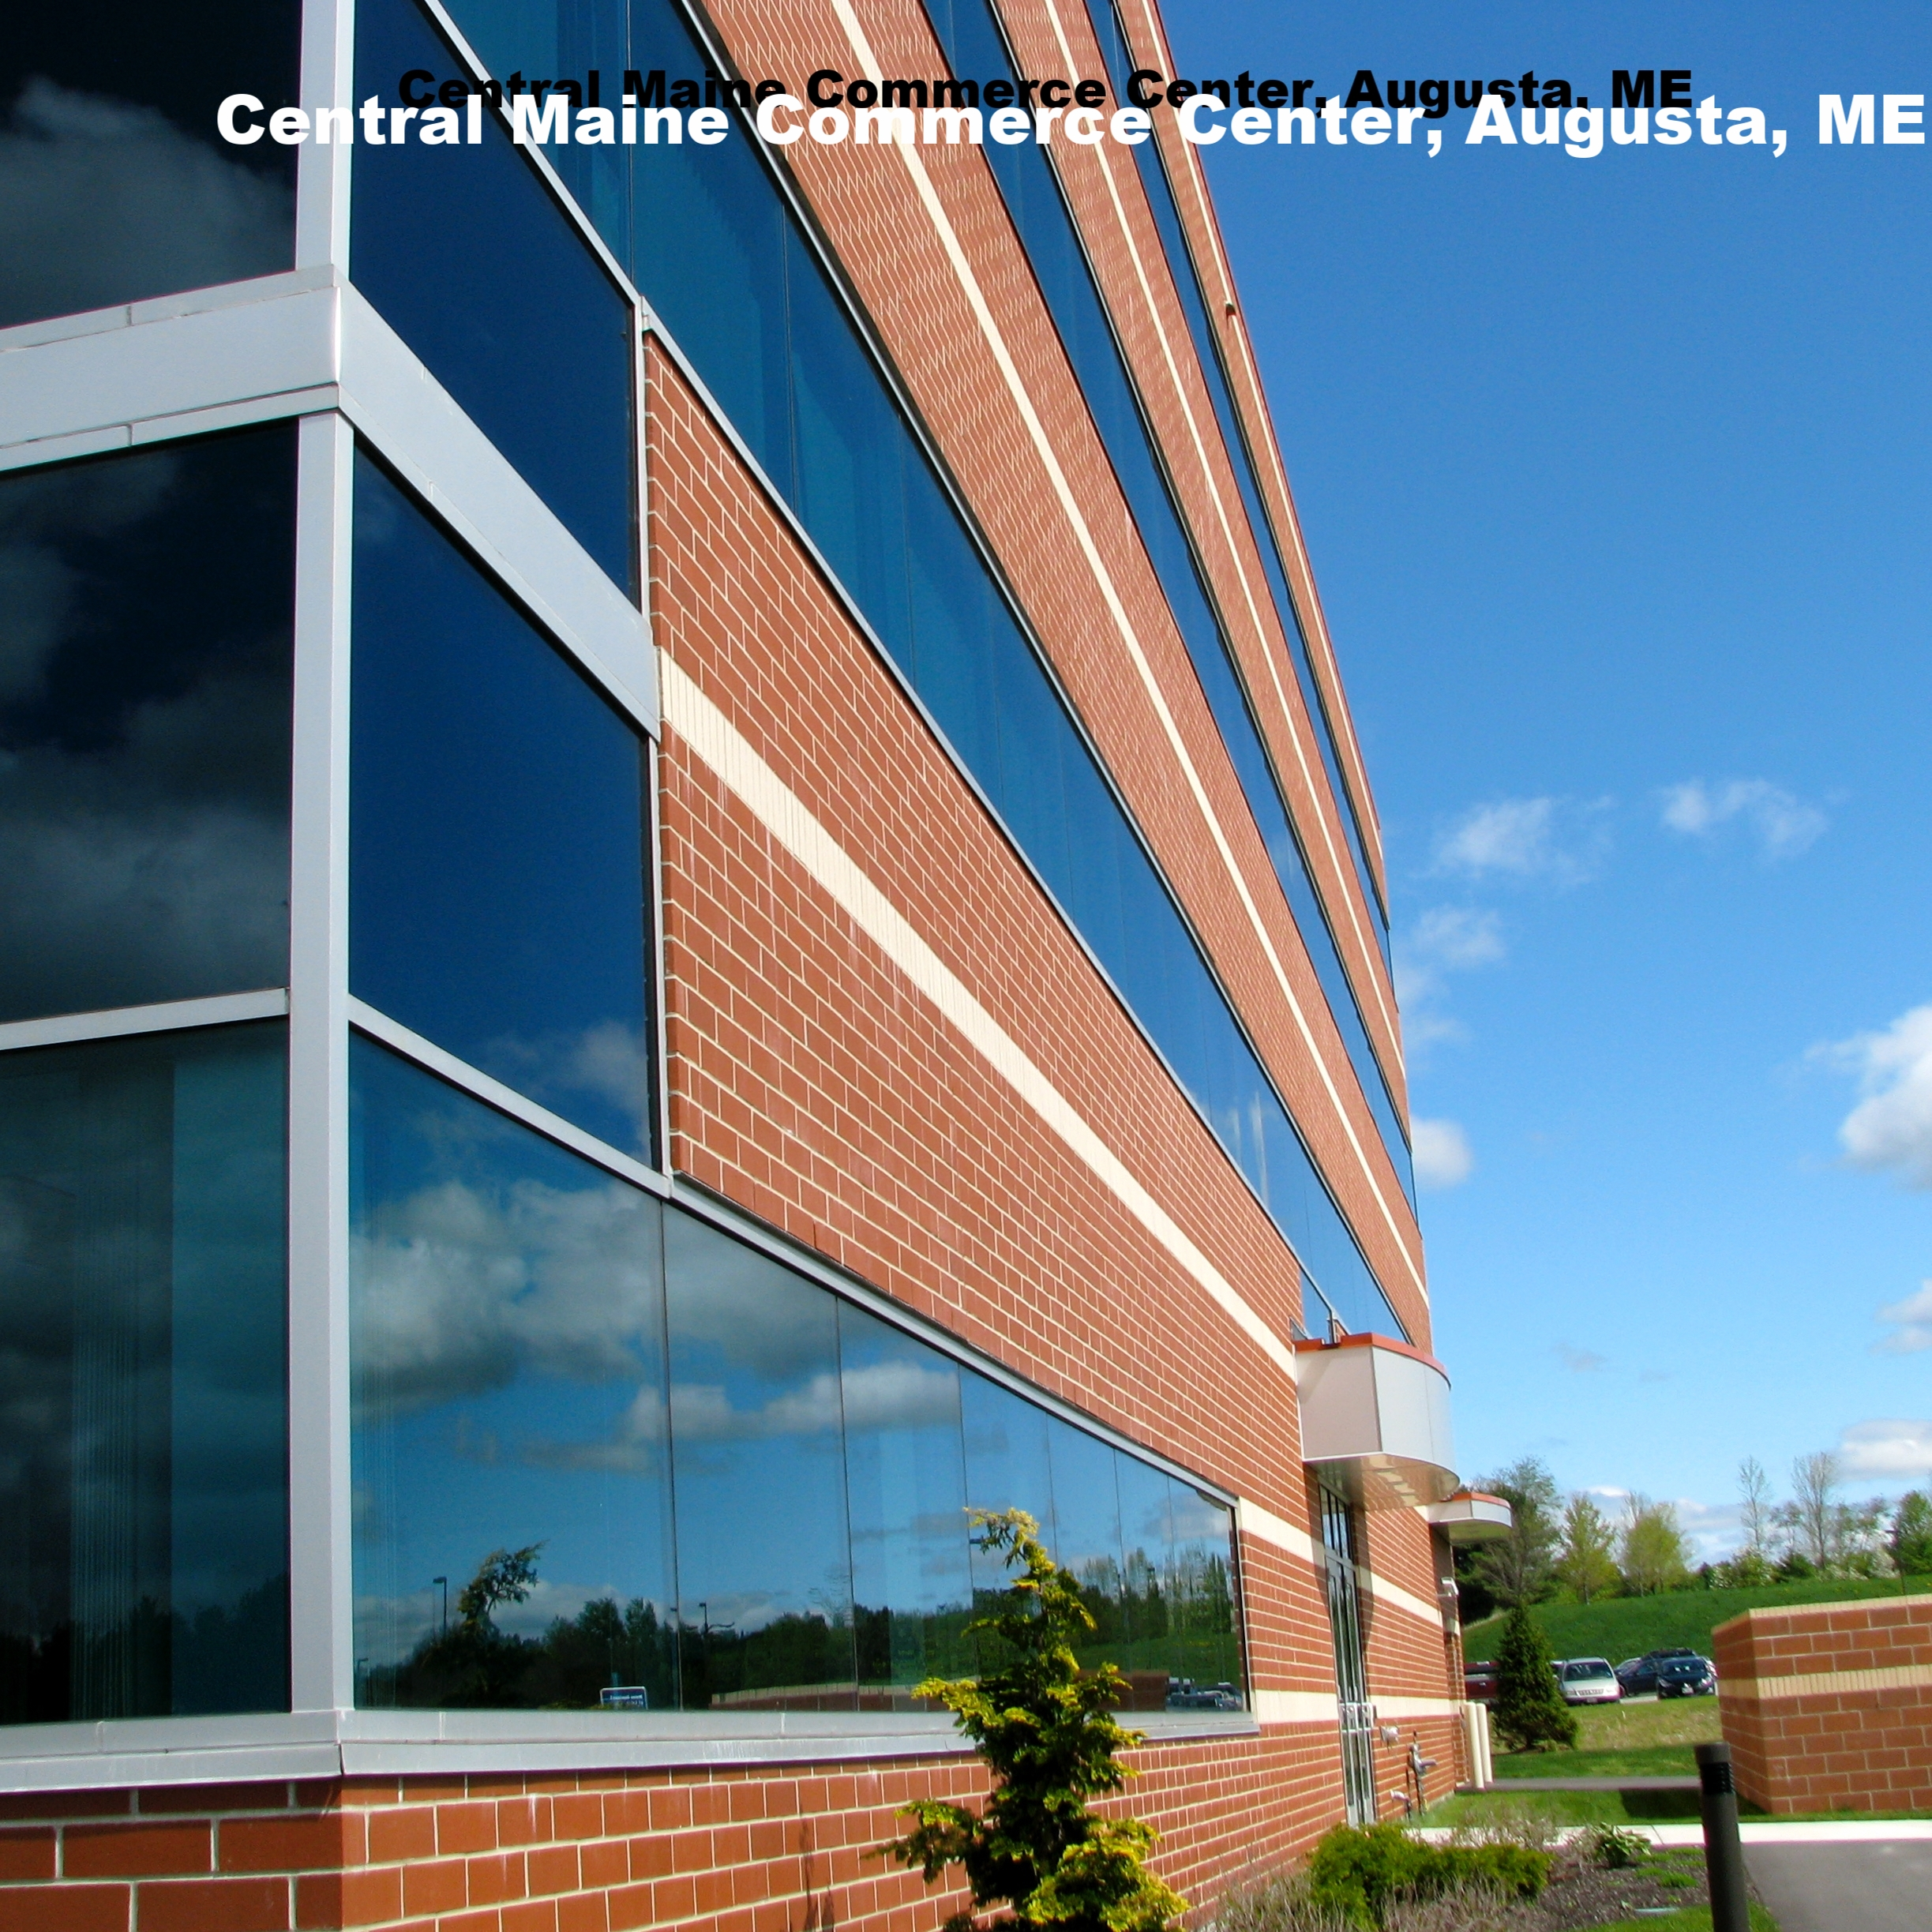 Central Maine Commerce Center, Augusta, ME